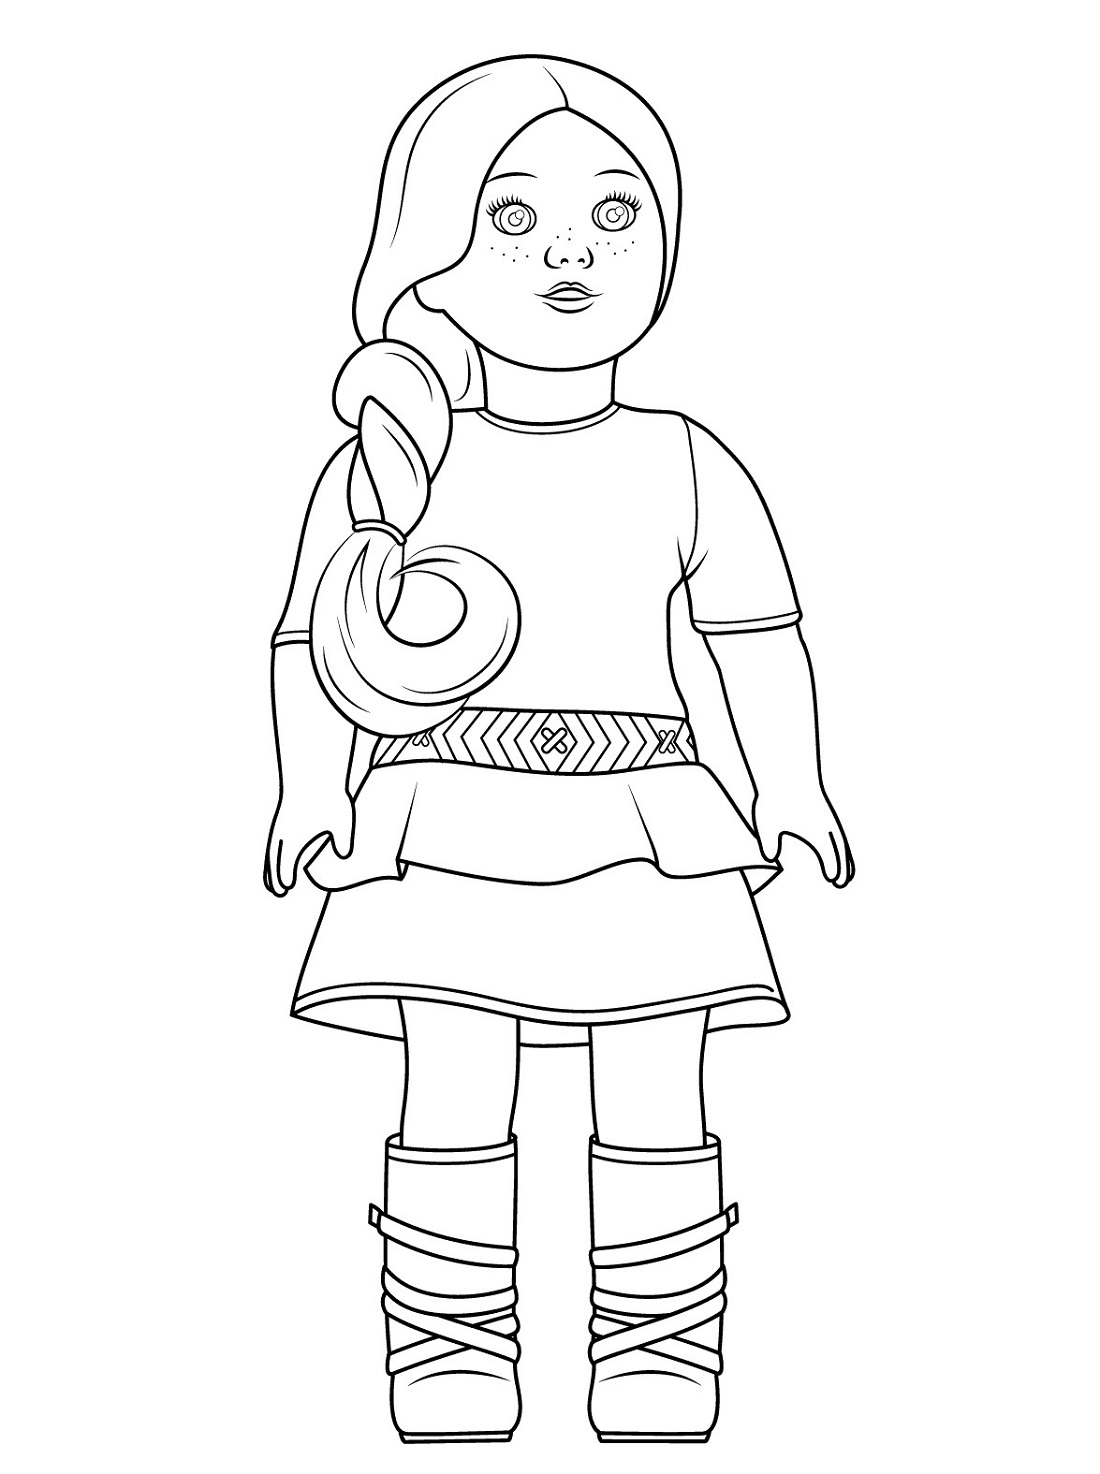 american girl doll coloring pages to print american girl doll coloring pages to download and print pages print doll girl american coloring to